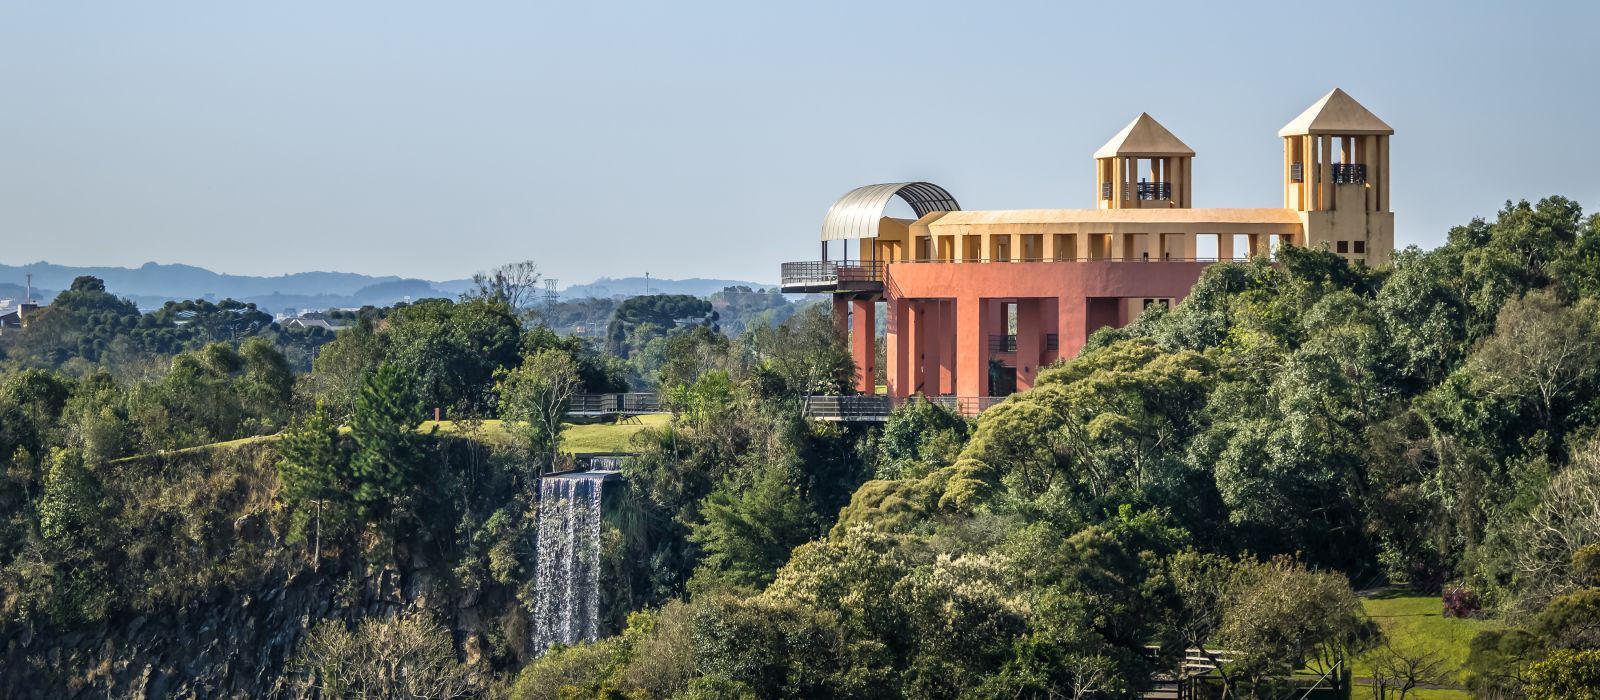 Viewpoint and waterfall at Tangua Park - Curitiba, Brazil, South America